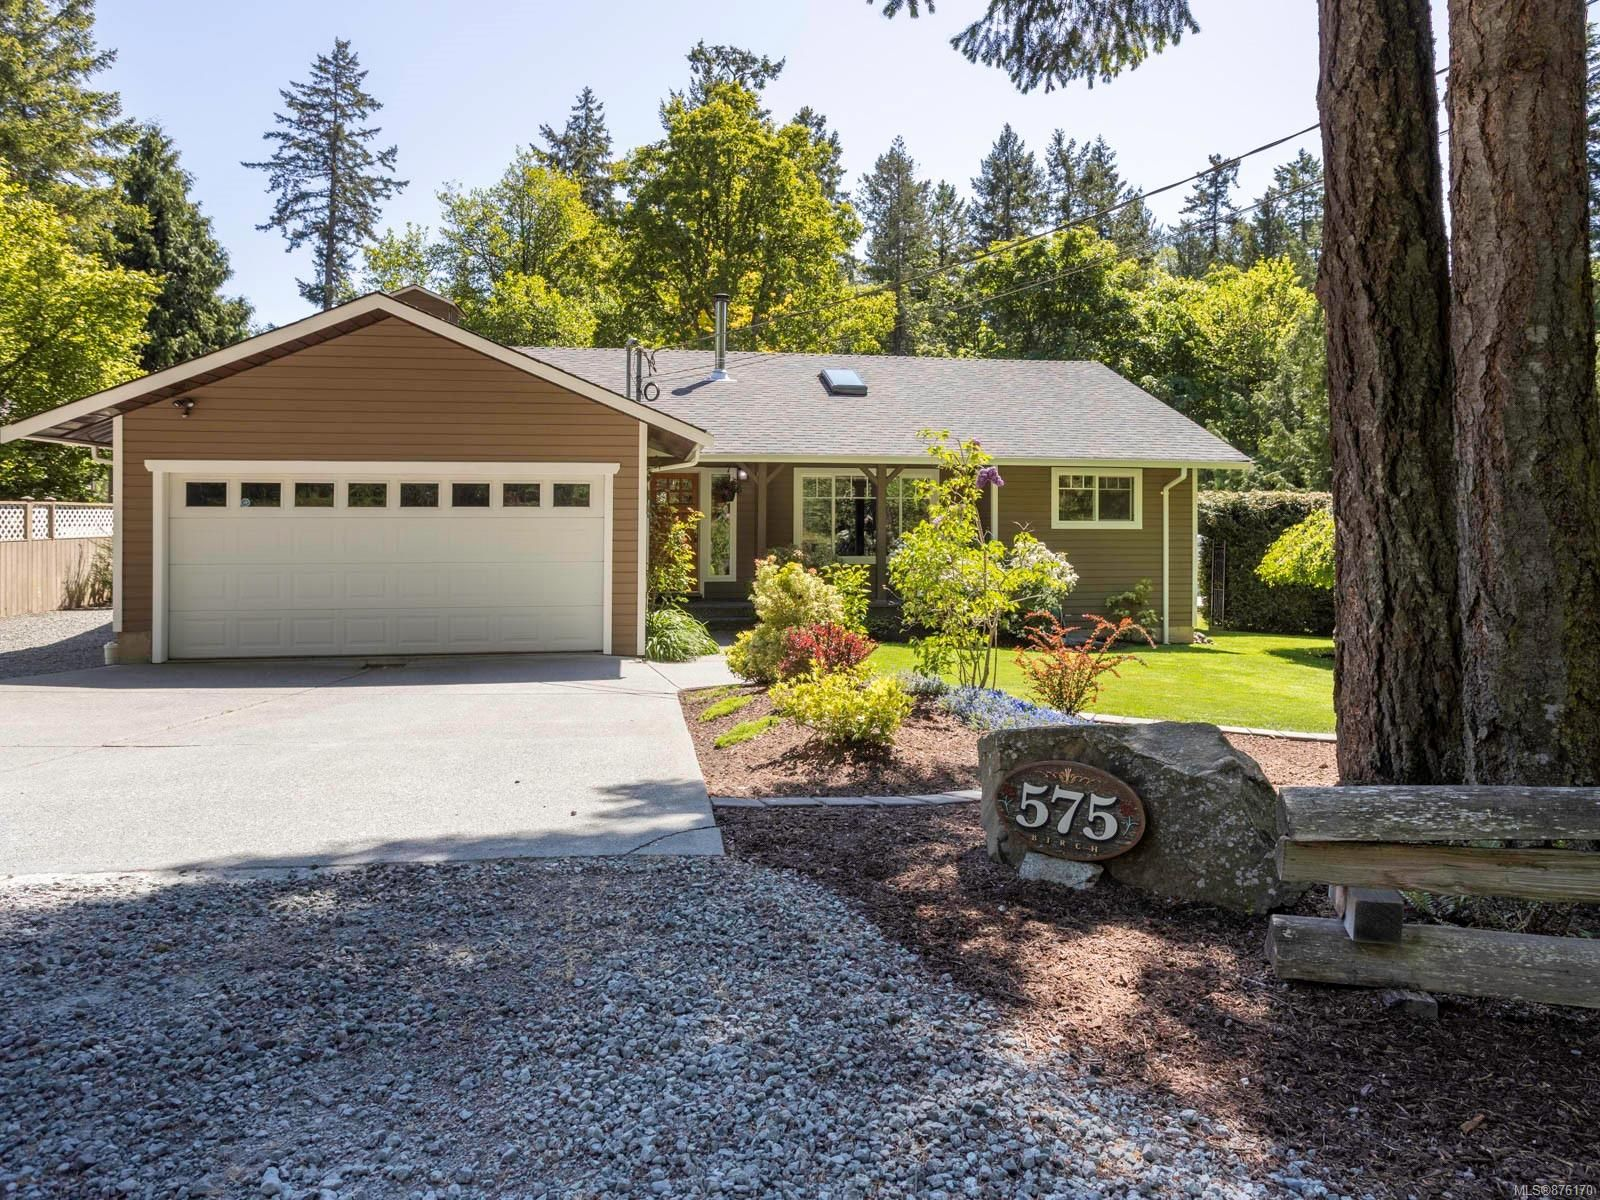 Main Photo: 575 Birch Rd in : NS Deep Cove House for sale (North Saanich)  : MLS®# 876170